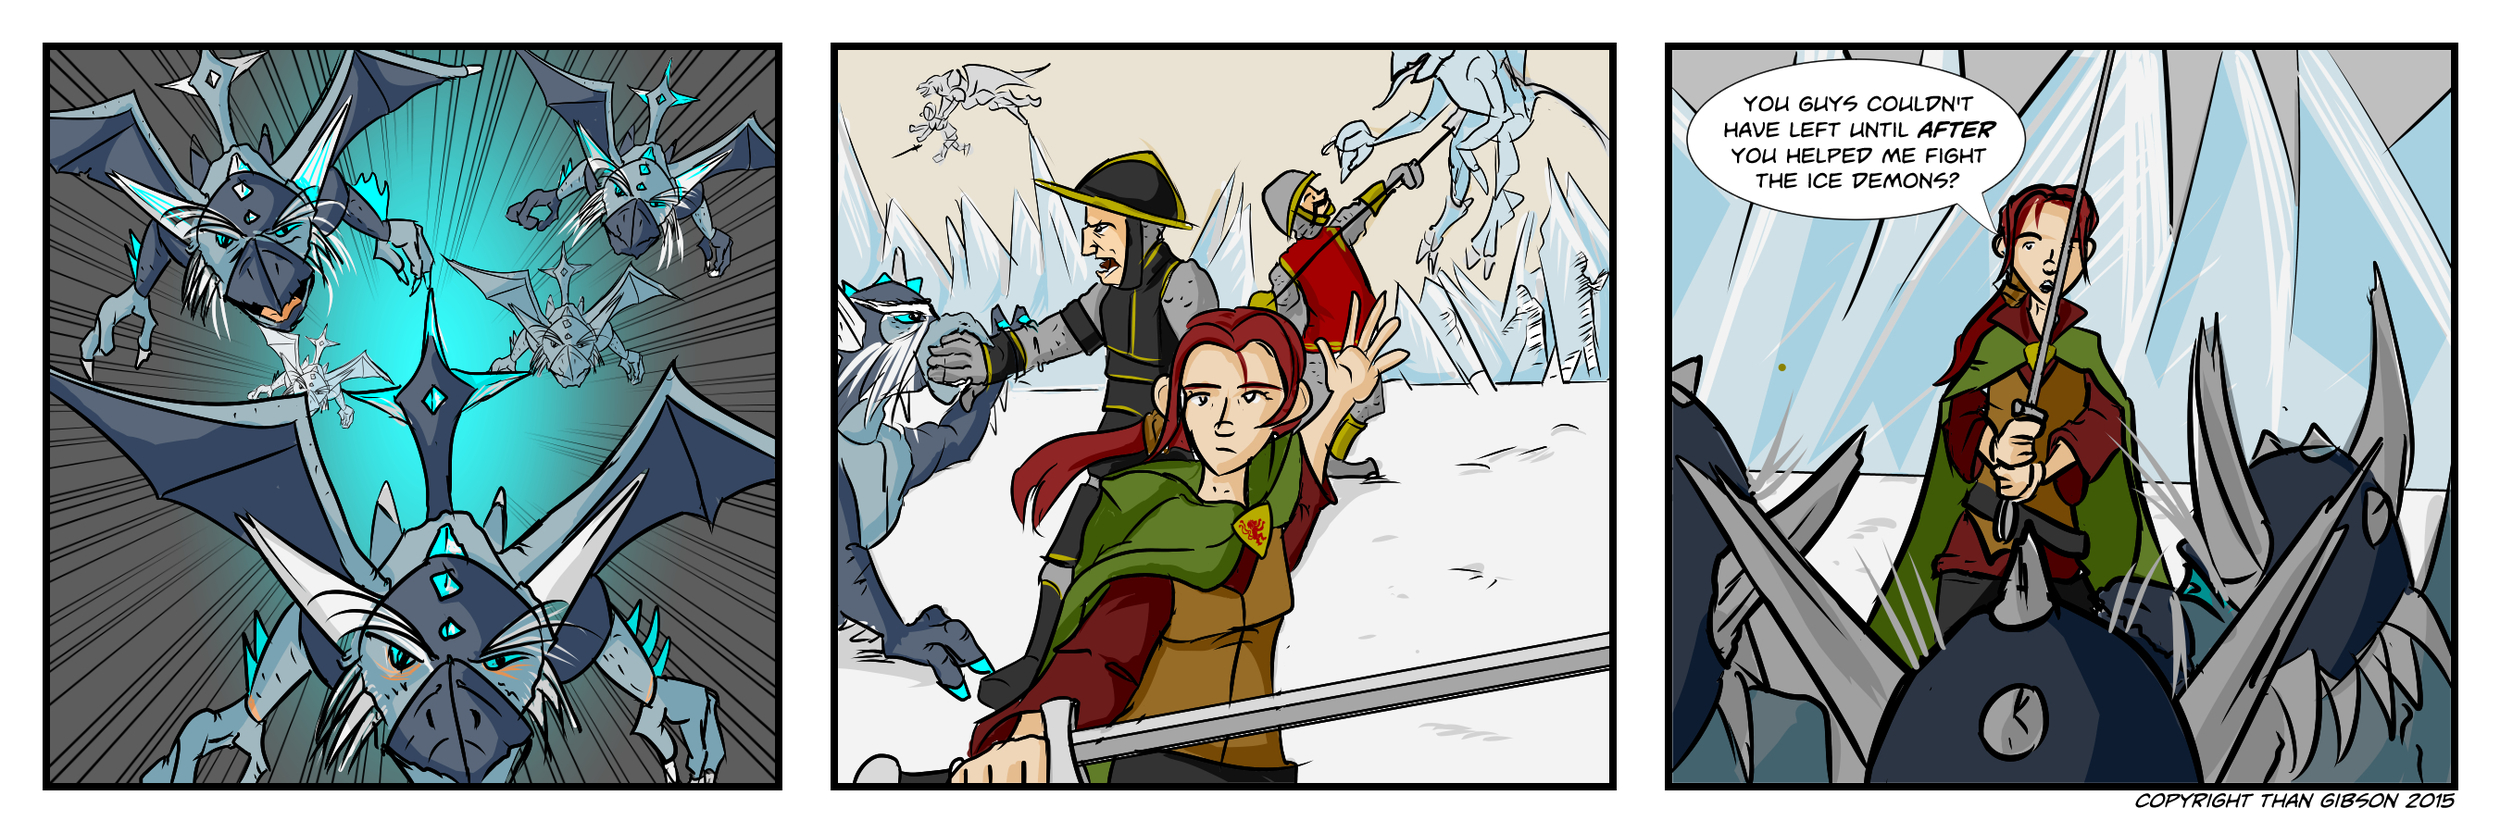 CHRONICLE: A CHRONICLE OF THIEVES - CHAPTER 2, STRIP 19